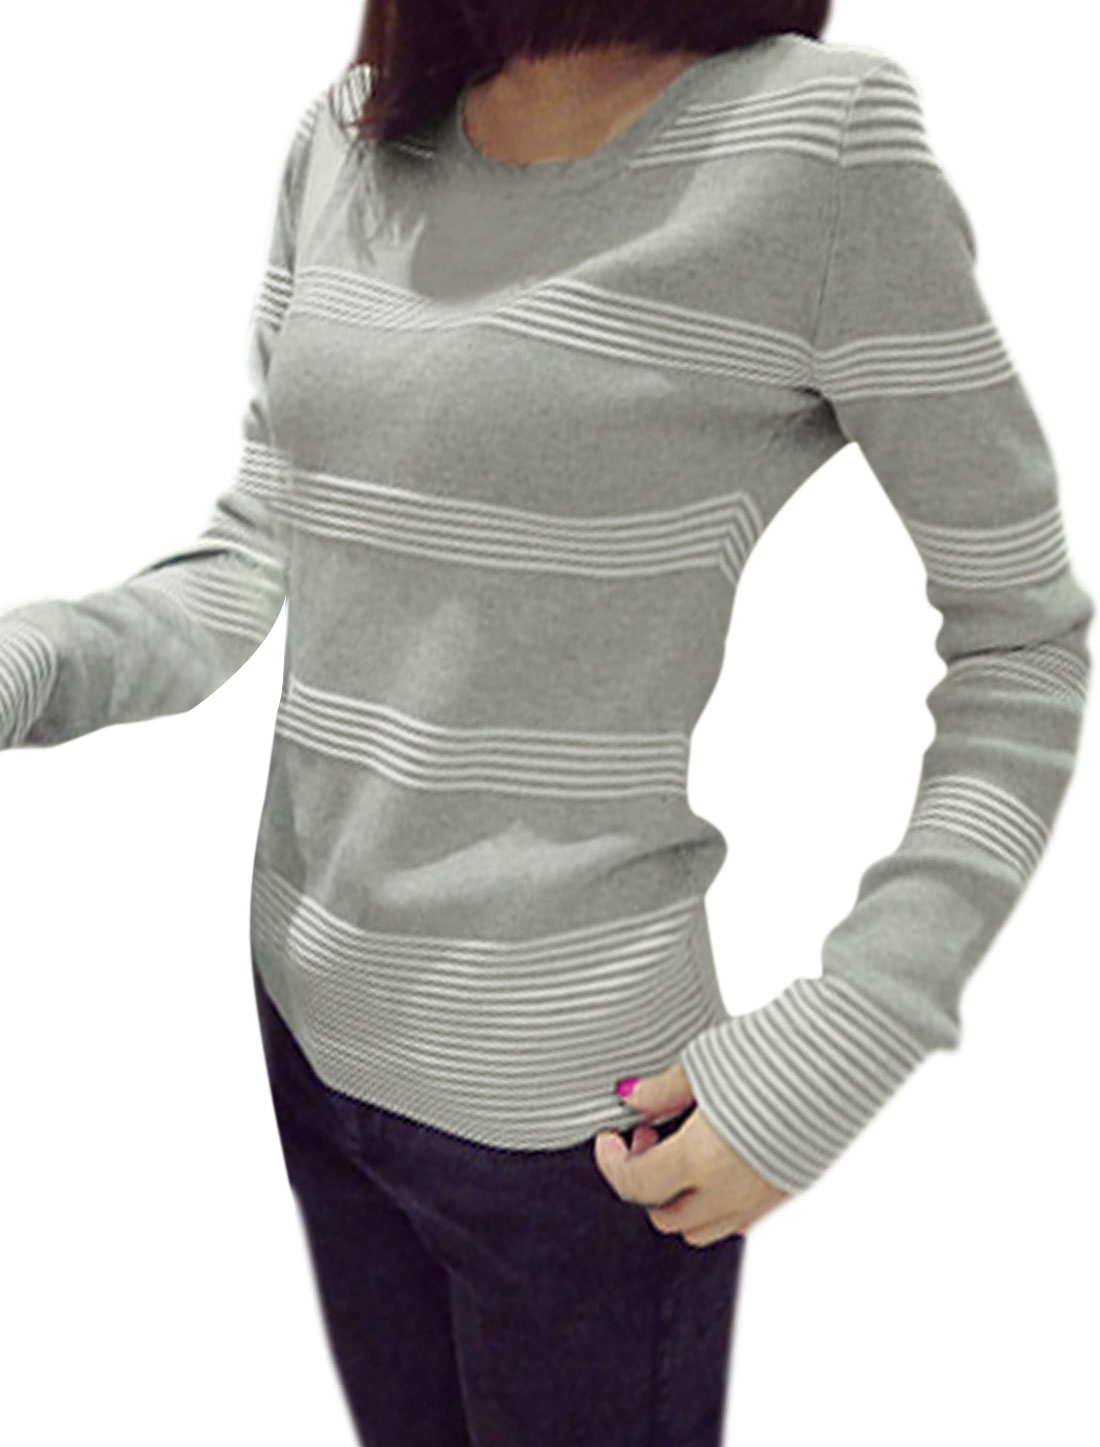 Ladies Long Sleeves Horizontal Stripes Knitted Top Light Gray XS